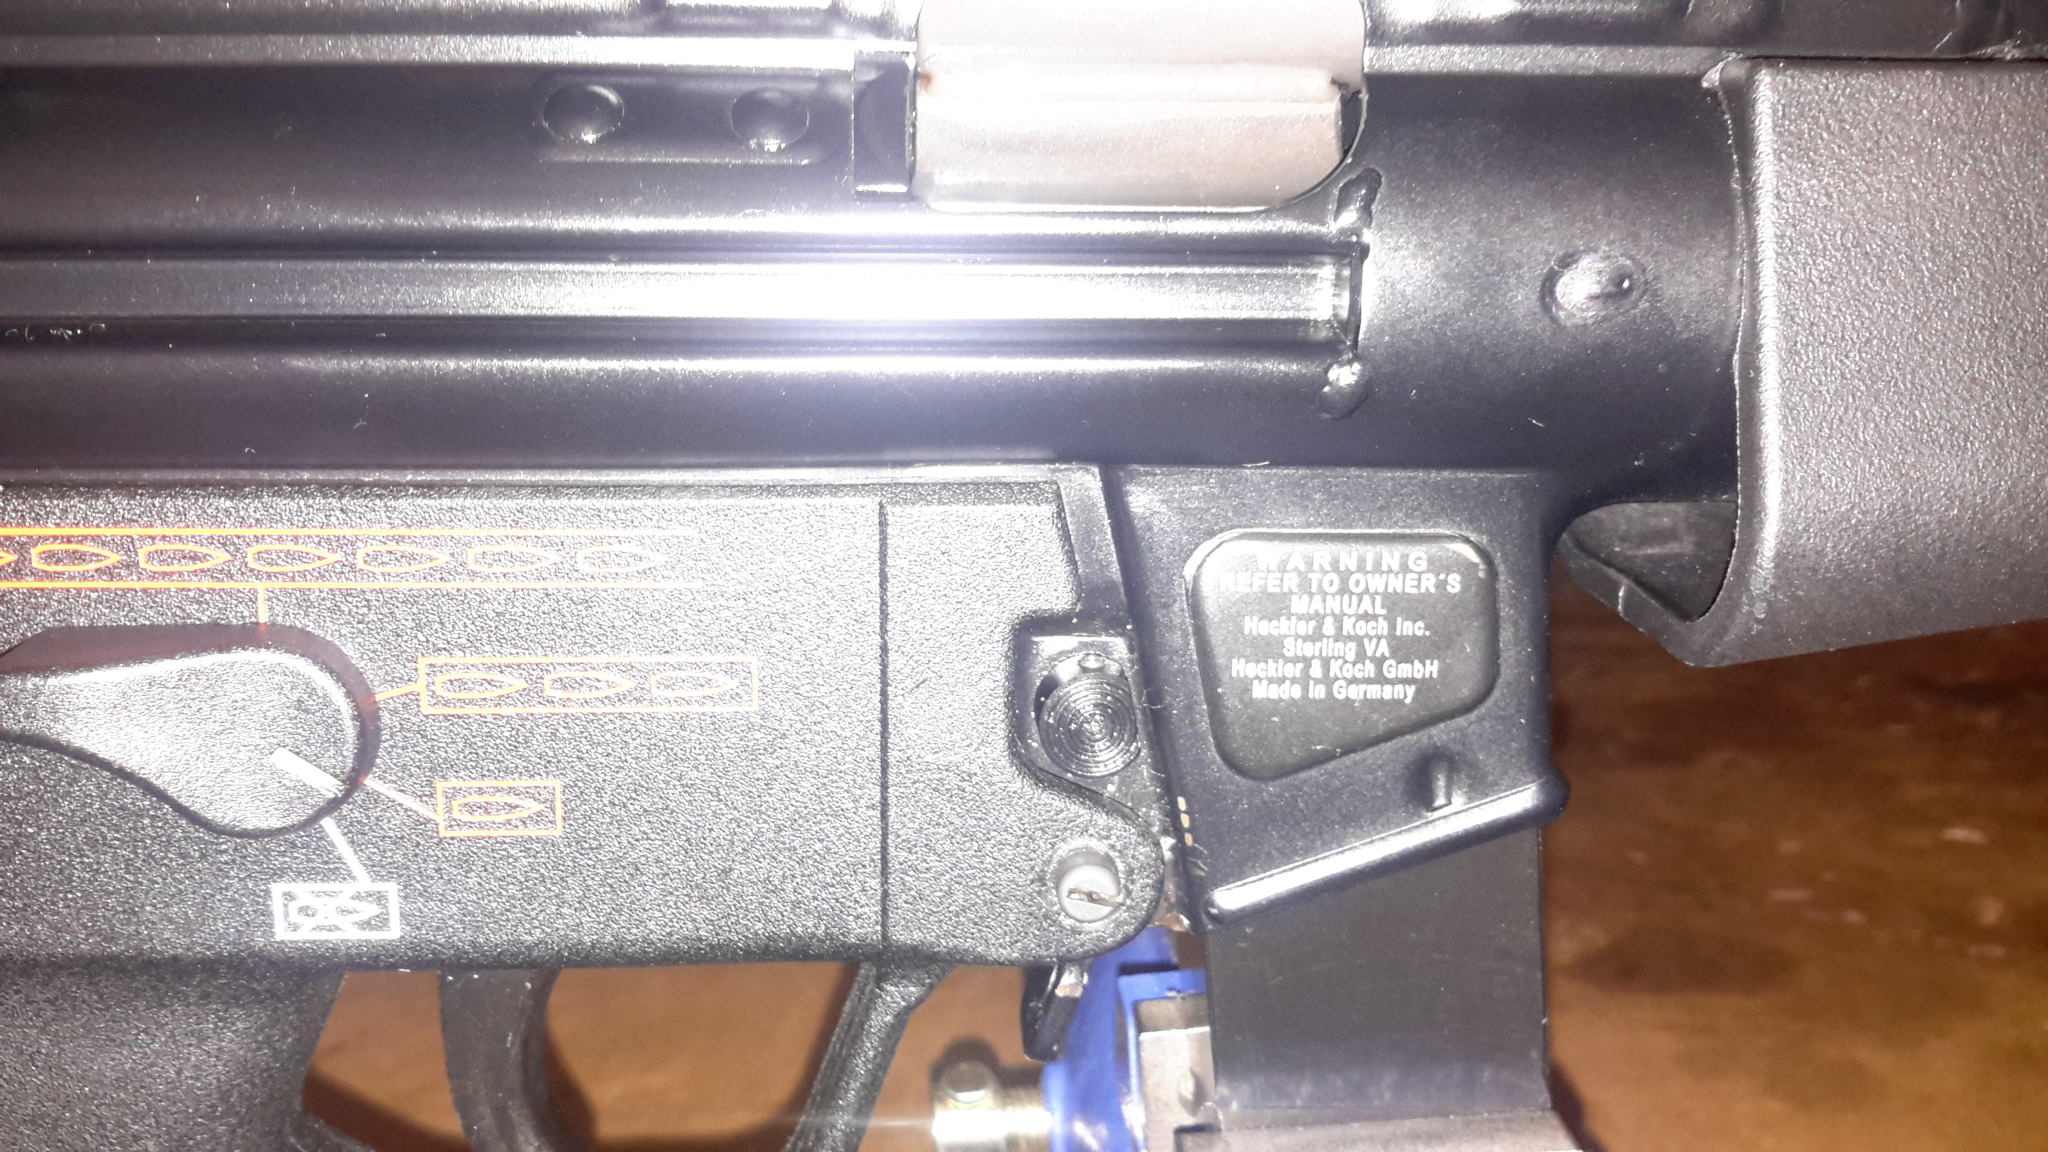 MP5-N or MP5F conversion from HK94-20170831_020400.jpg